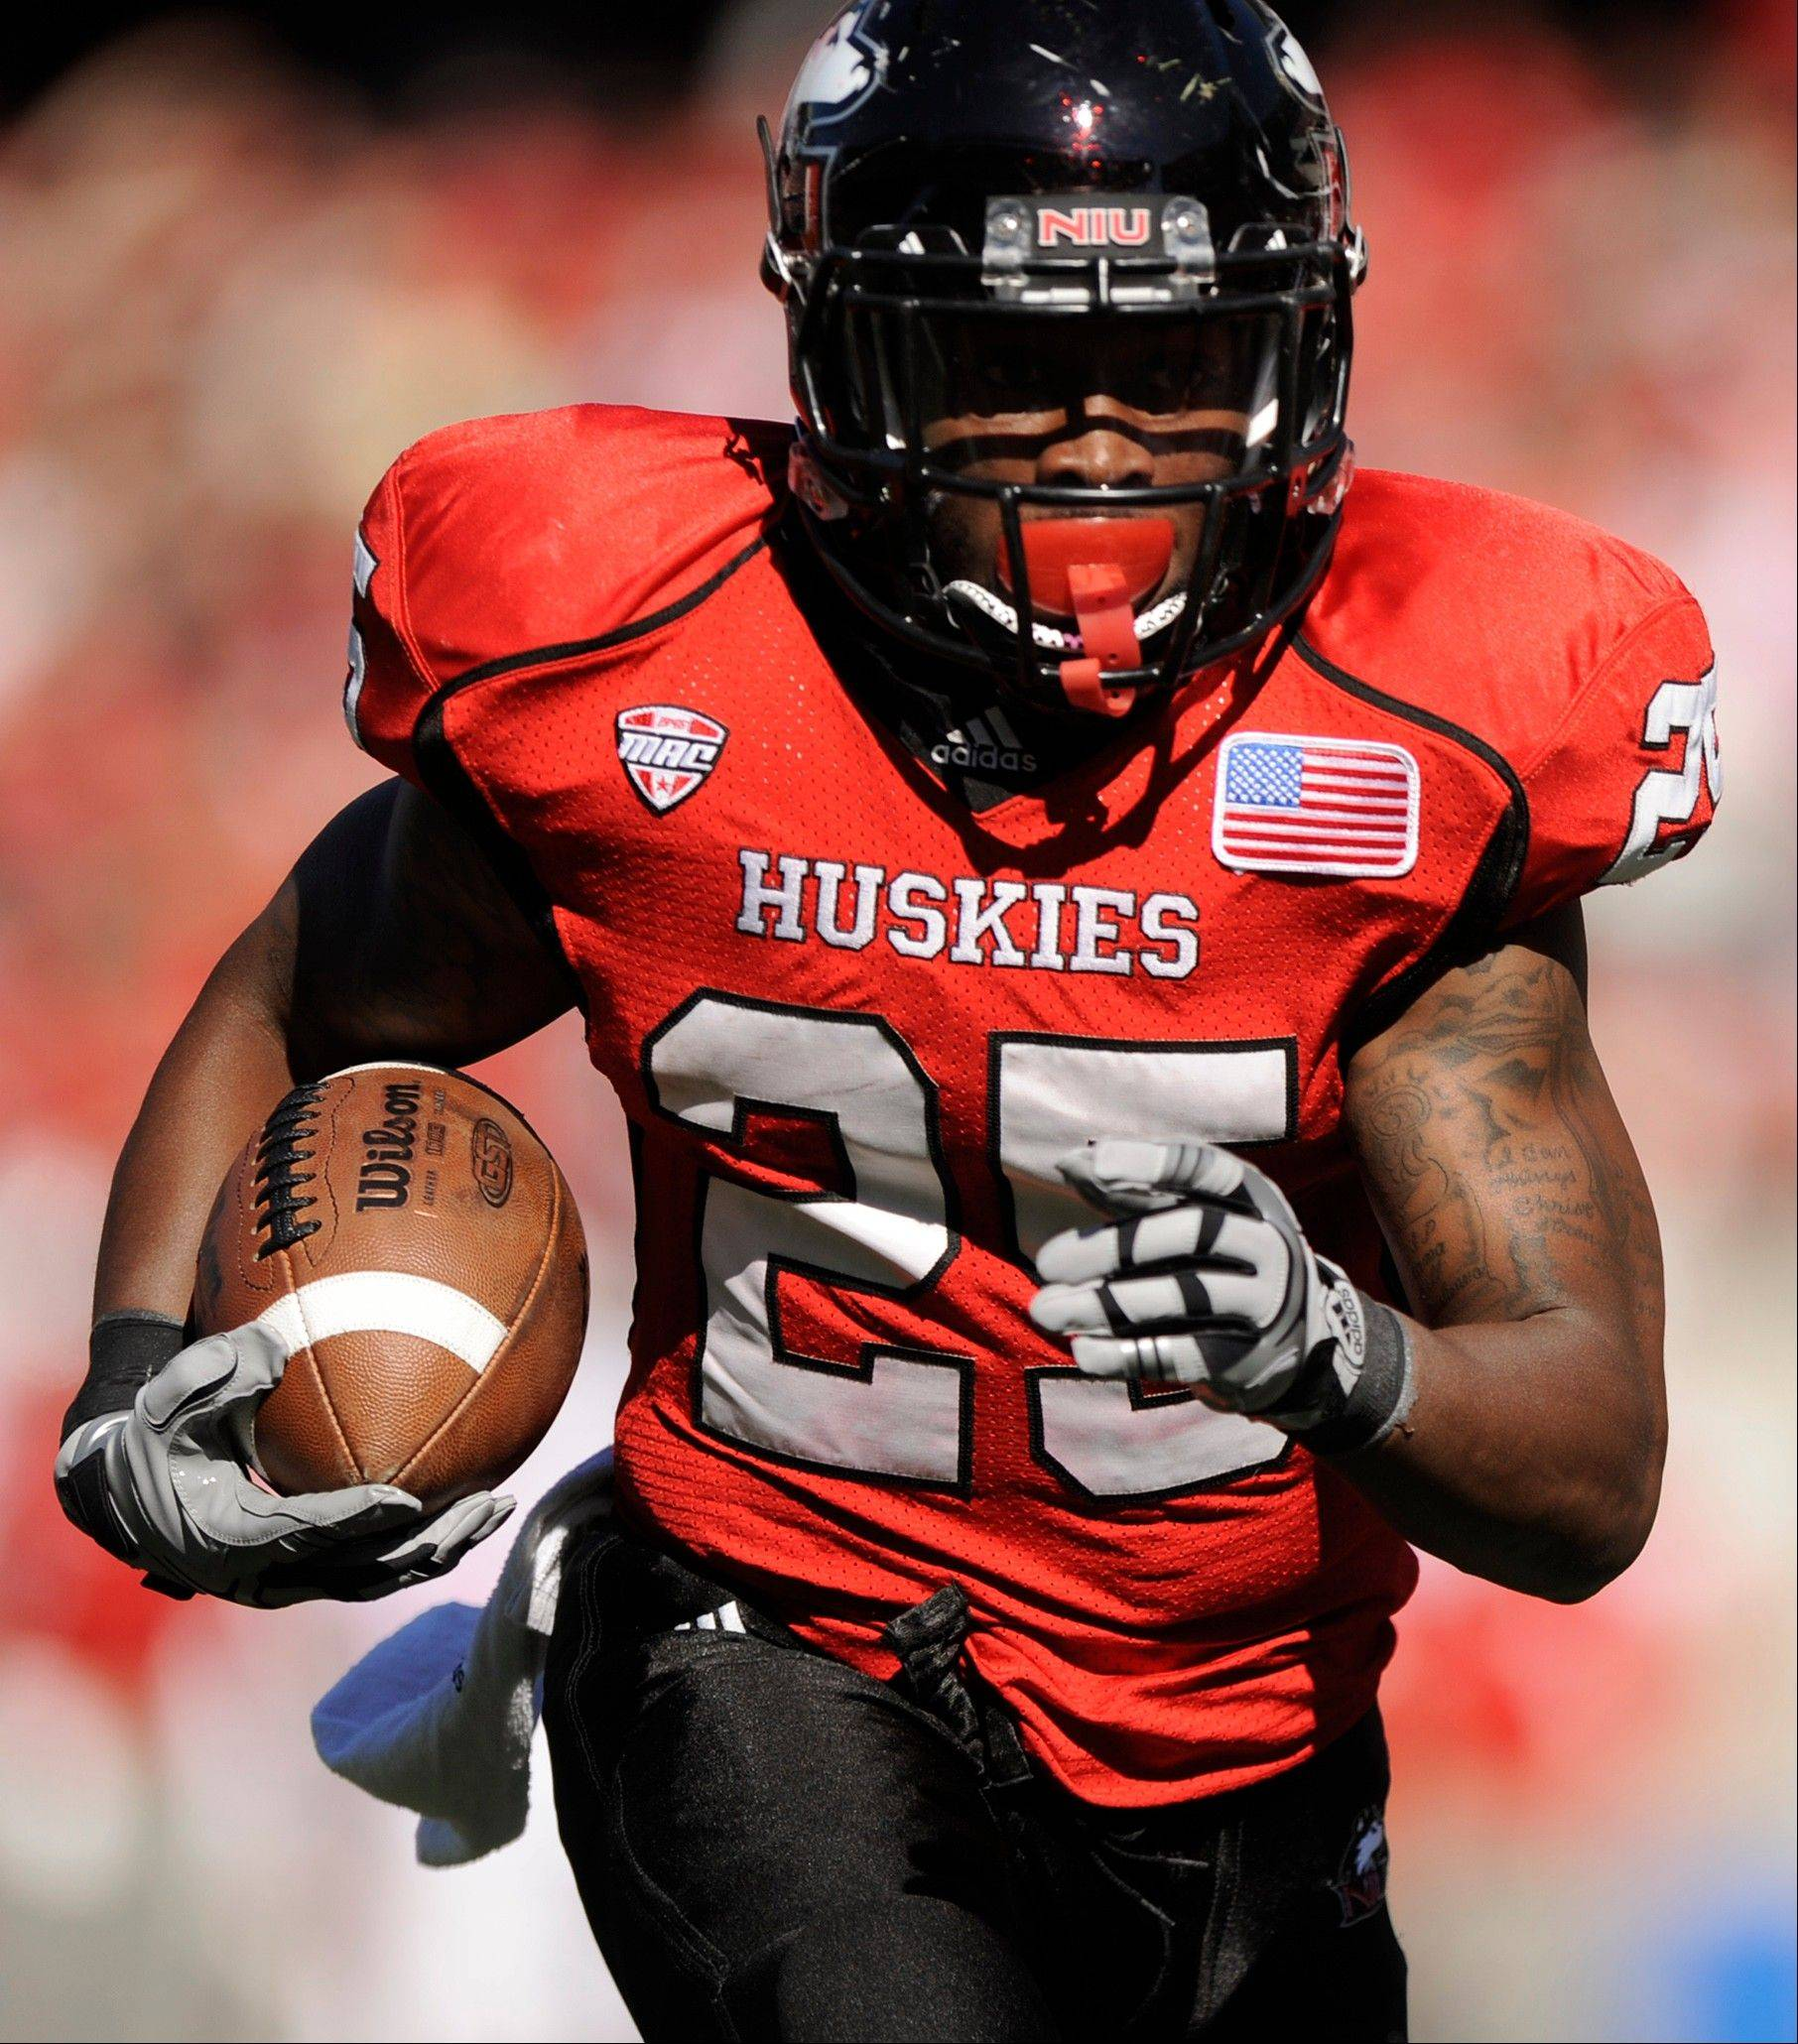 This touchdown run by Northern Illinois tailback Jasmin Hopkins was among the few offensive highlights for NIU against Wisconsin last weekend at Soldier Field. This weekend the Huskies are home against Cal-Poly on Saturday, and NIU has won 10 straight at Huskie Stadium.